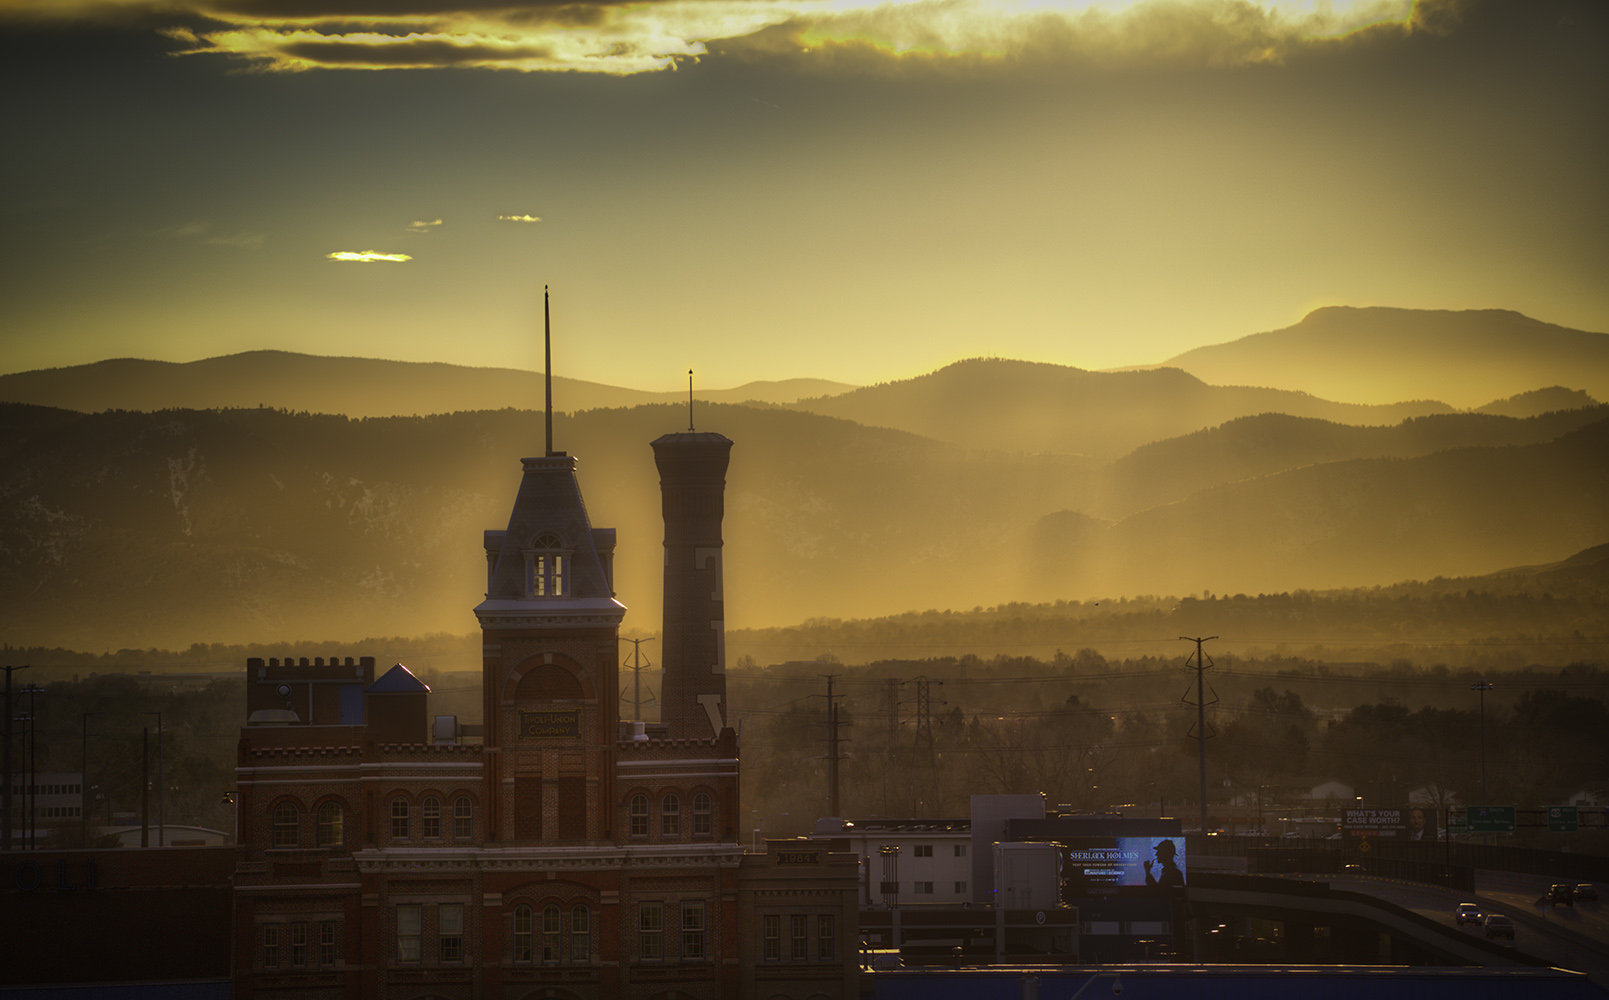 Location and Date: Denver, Colorado, USA; 15 Nov 2015  Tech Specs: 300 mm @ f/8.0; ISO 400.  7 Bracket HDR  Camera @ Lens: Canon 5D Mark III; Canon EF 70-300mm f/4-5.6 IS USM